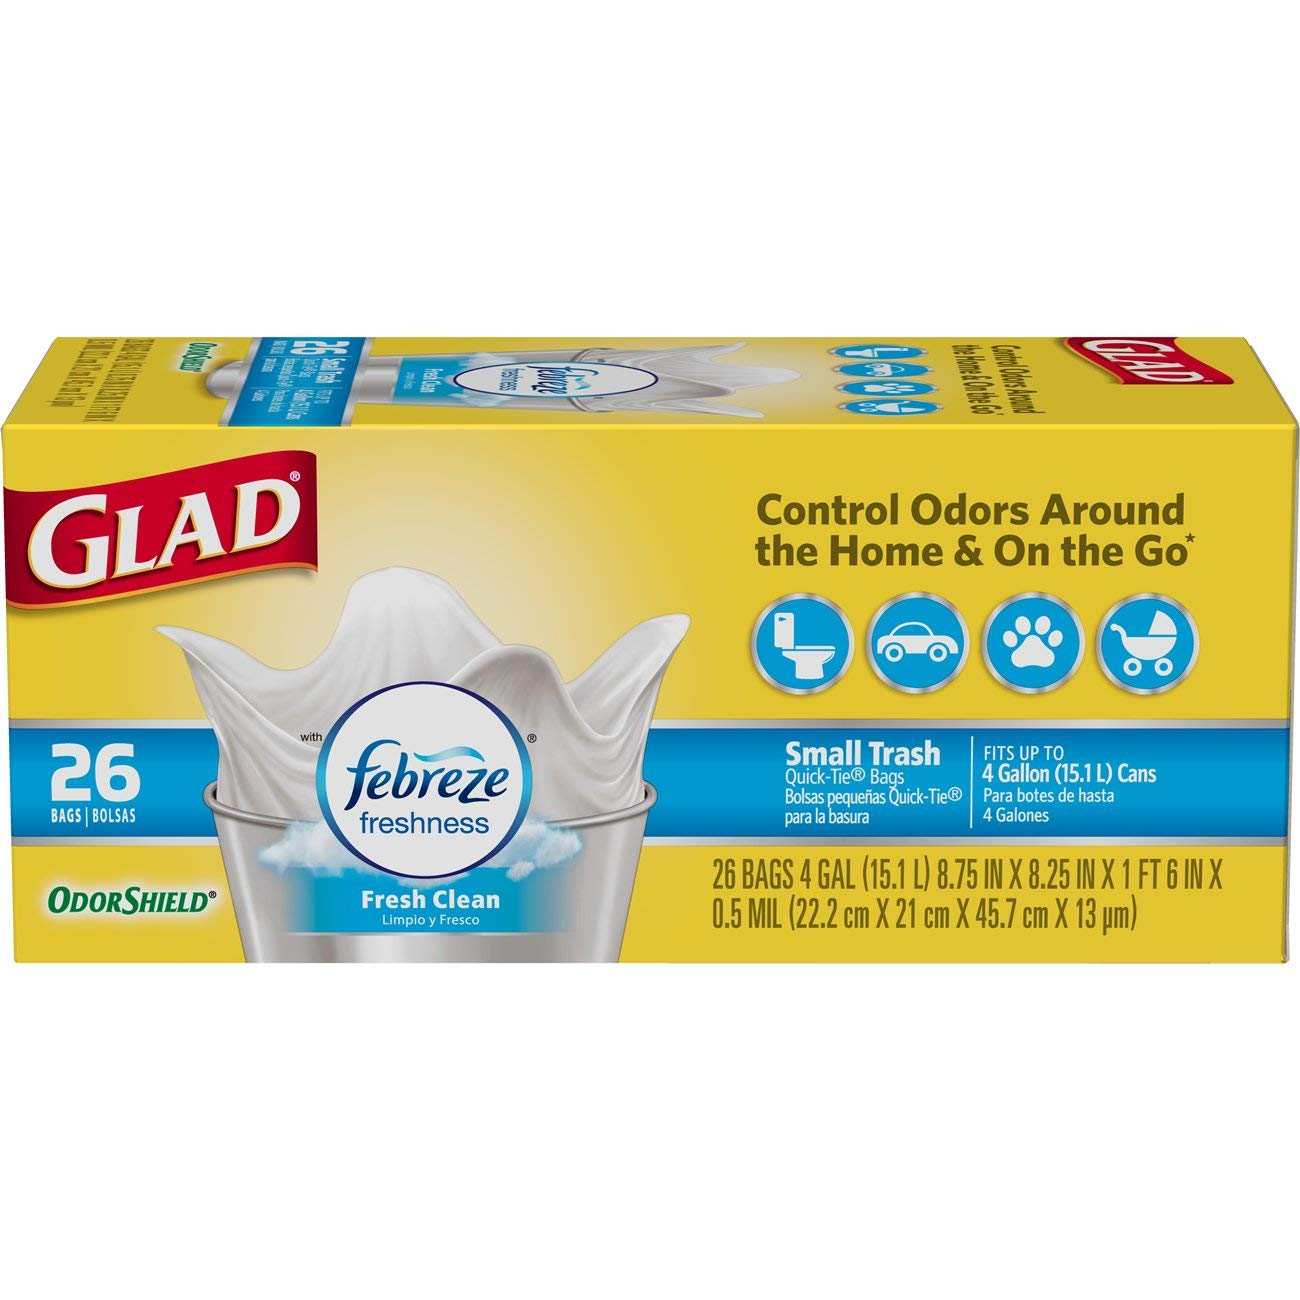 Glad Small Trash Bags - OdorShield 4 Gallon White Trash Bag, Febreze Fresh Clean - 26 Count Each (Pack of 6) by Glad